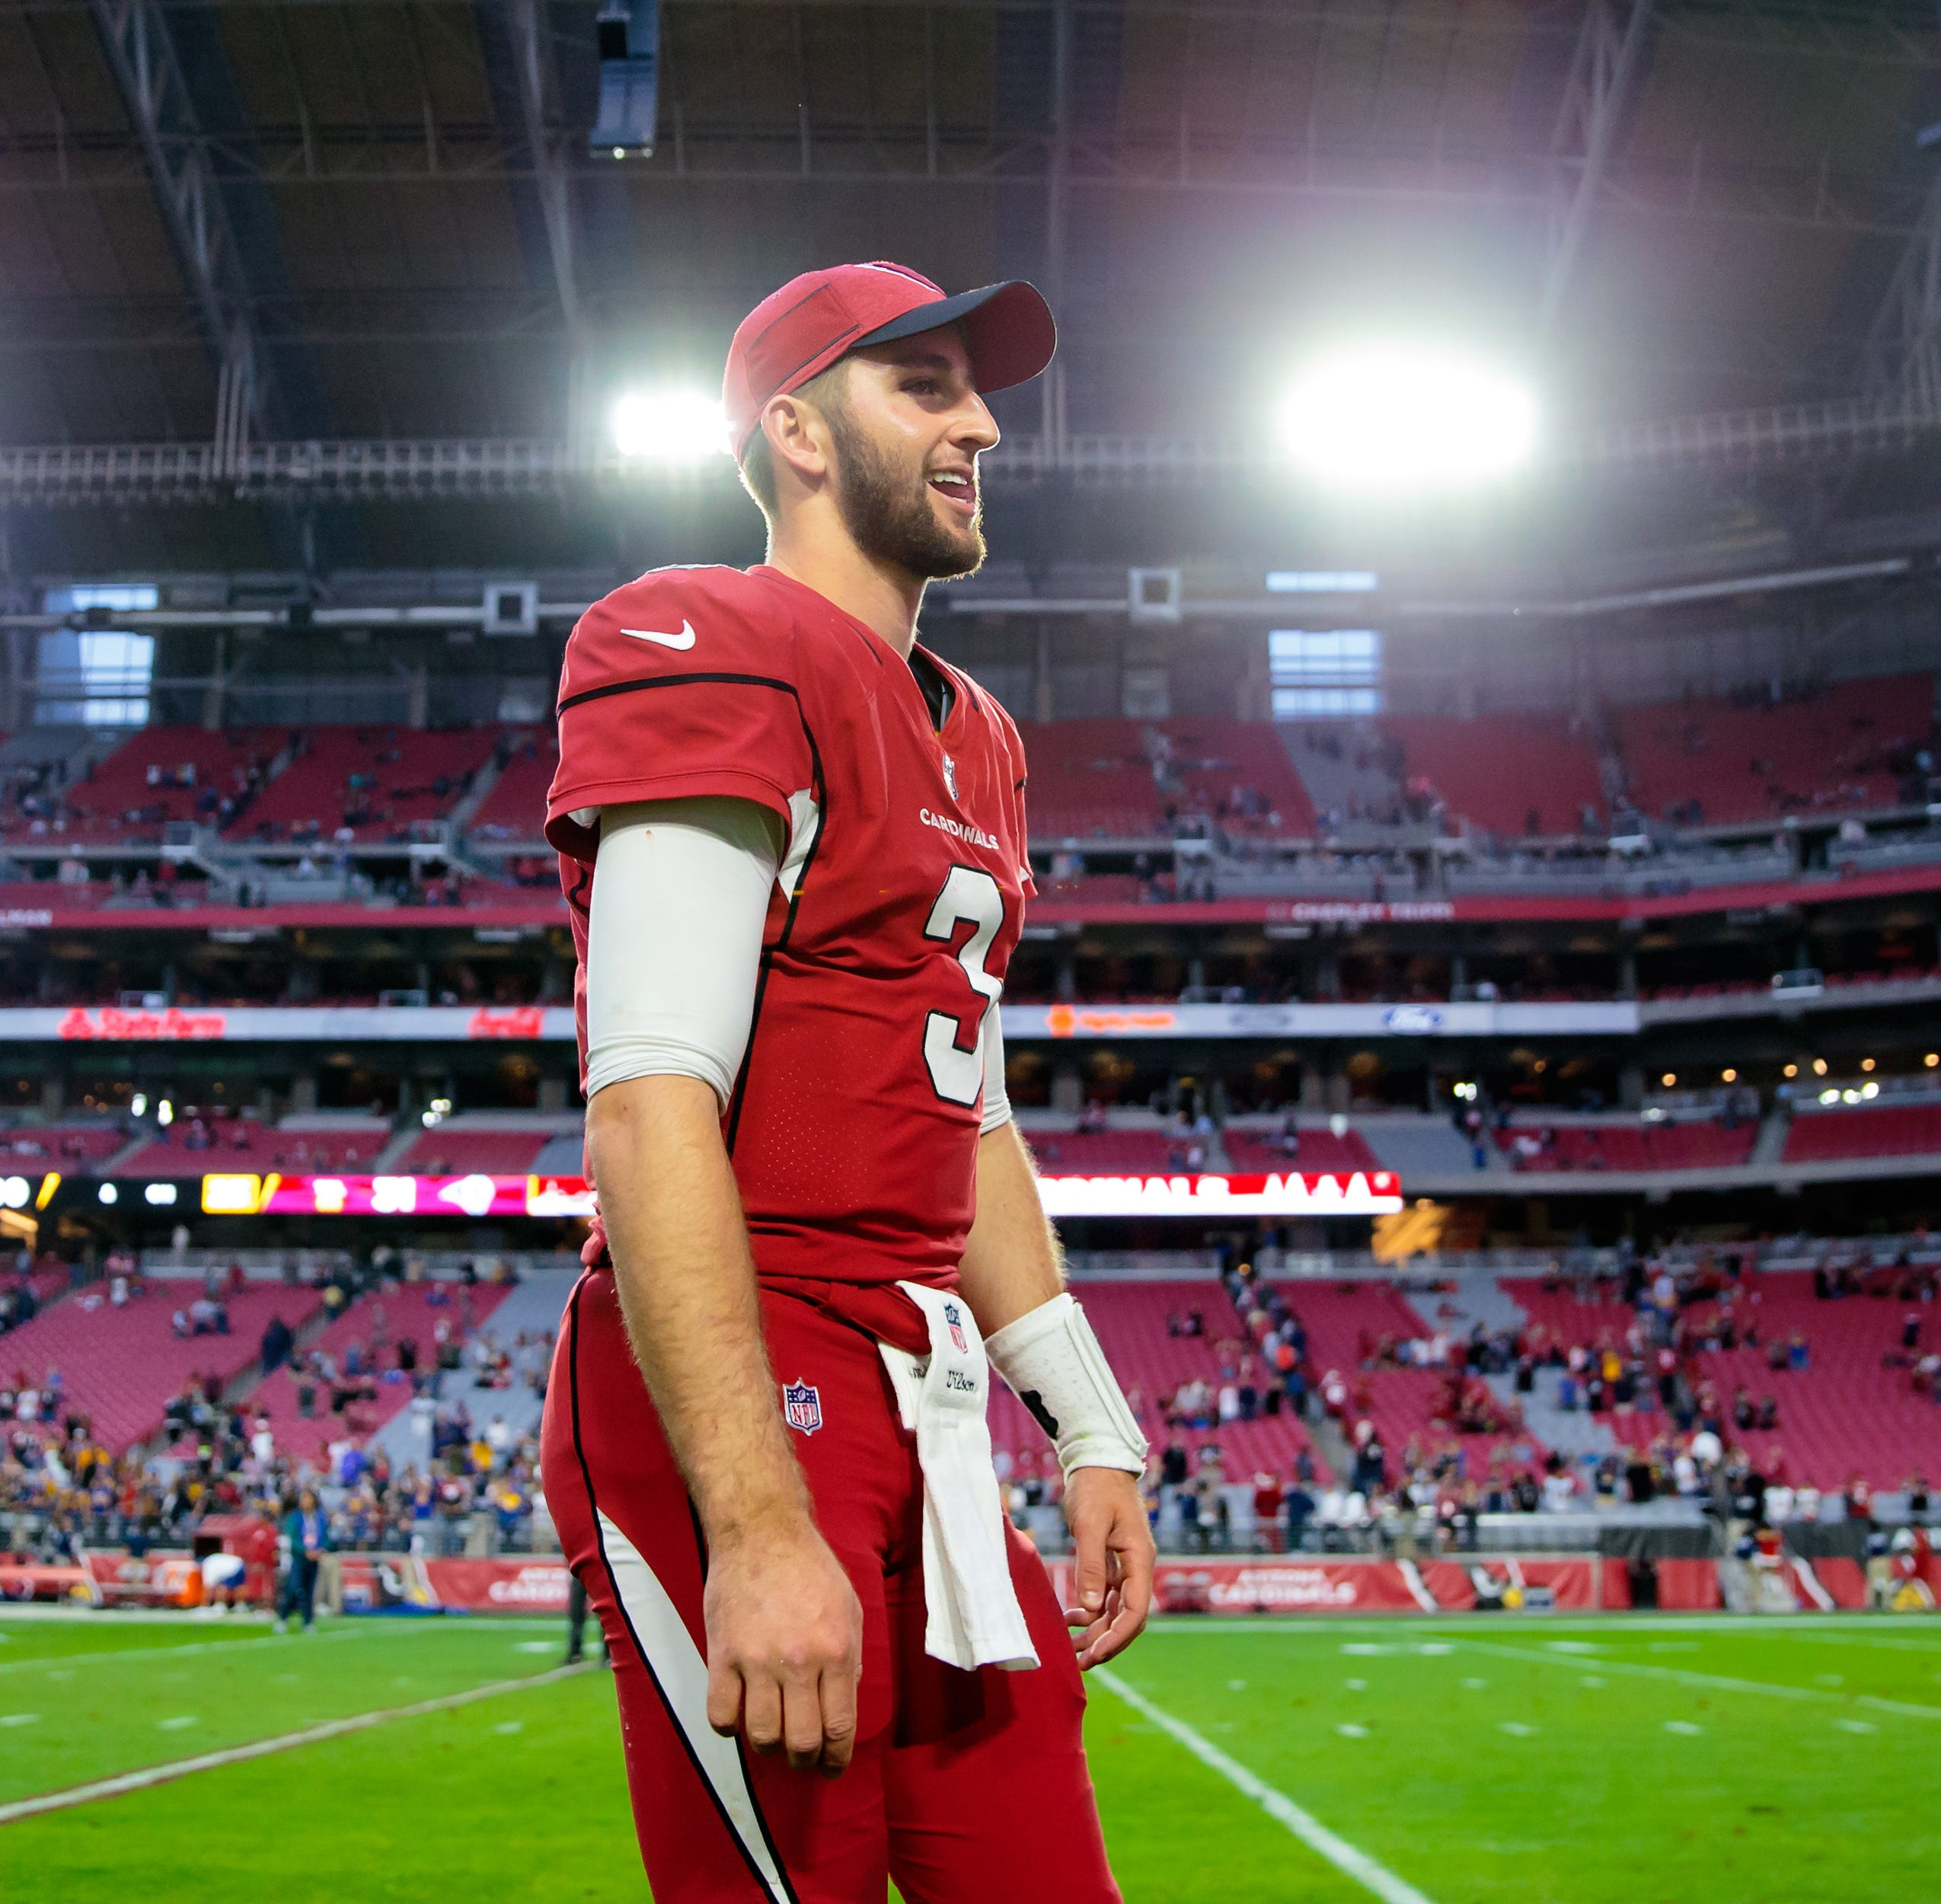 Cardinals' Josh Rosen opens up in SITV interview: 'I definitely understand the situation'